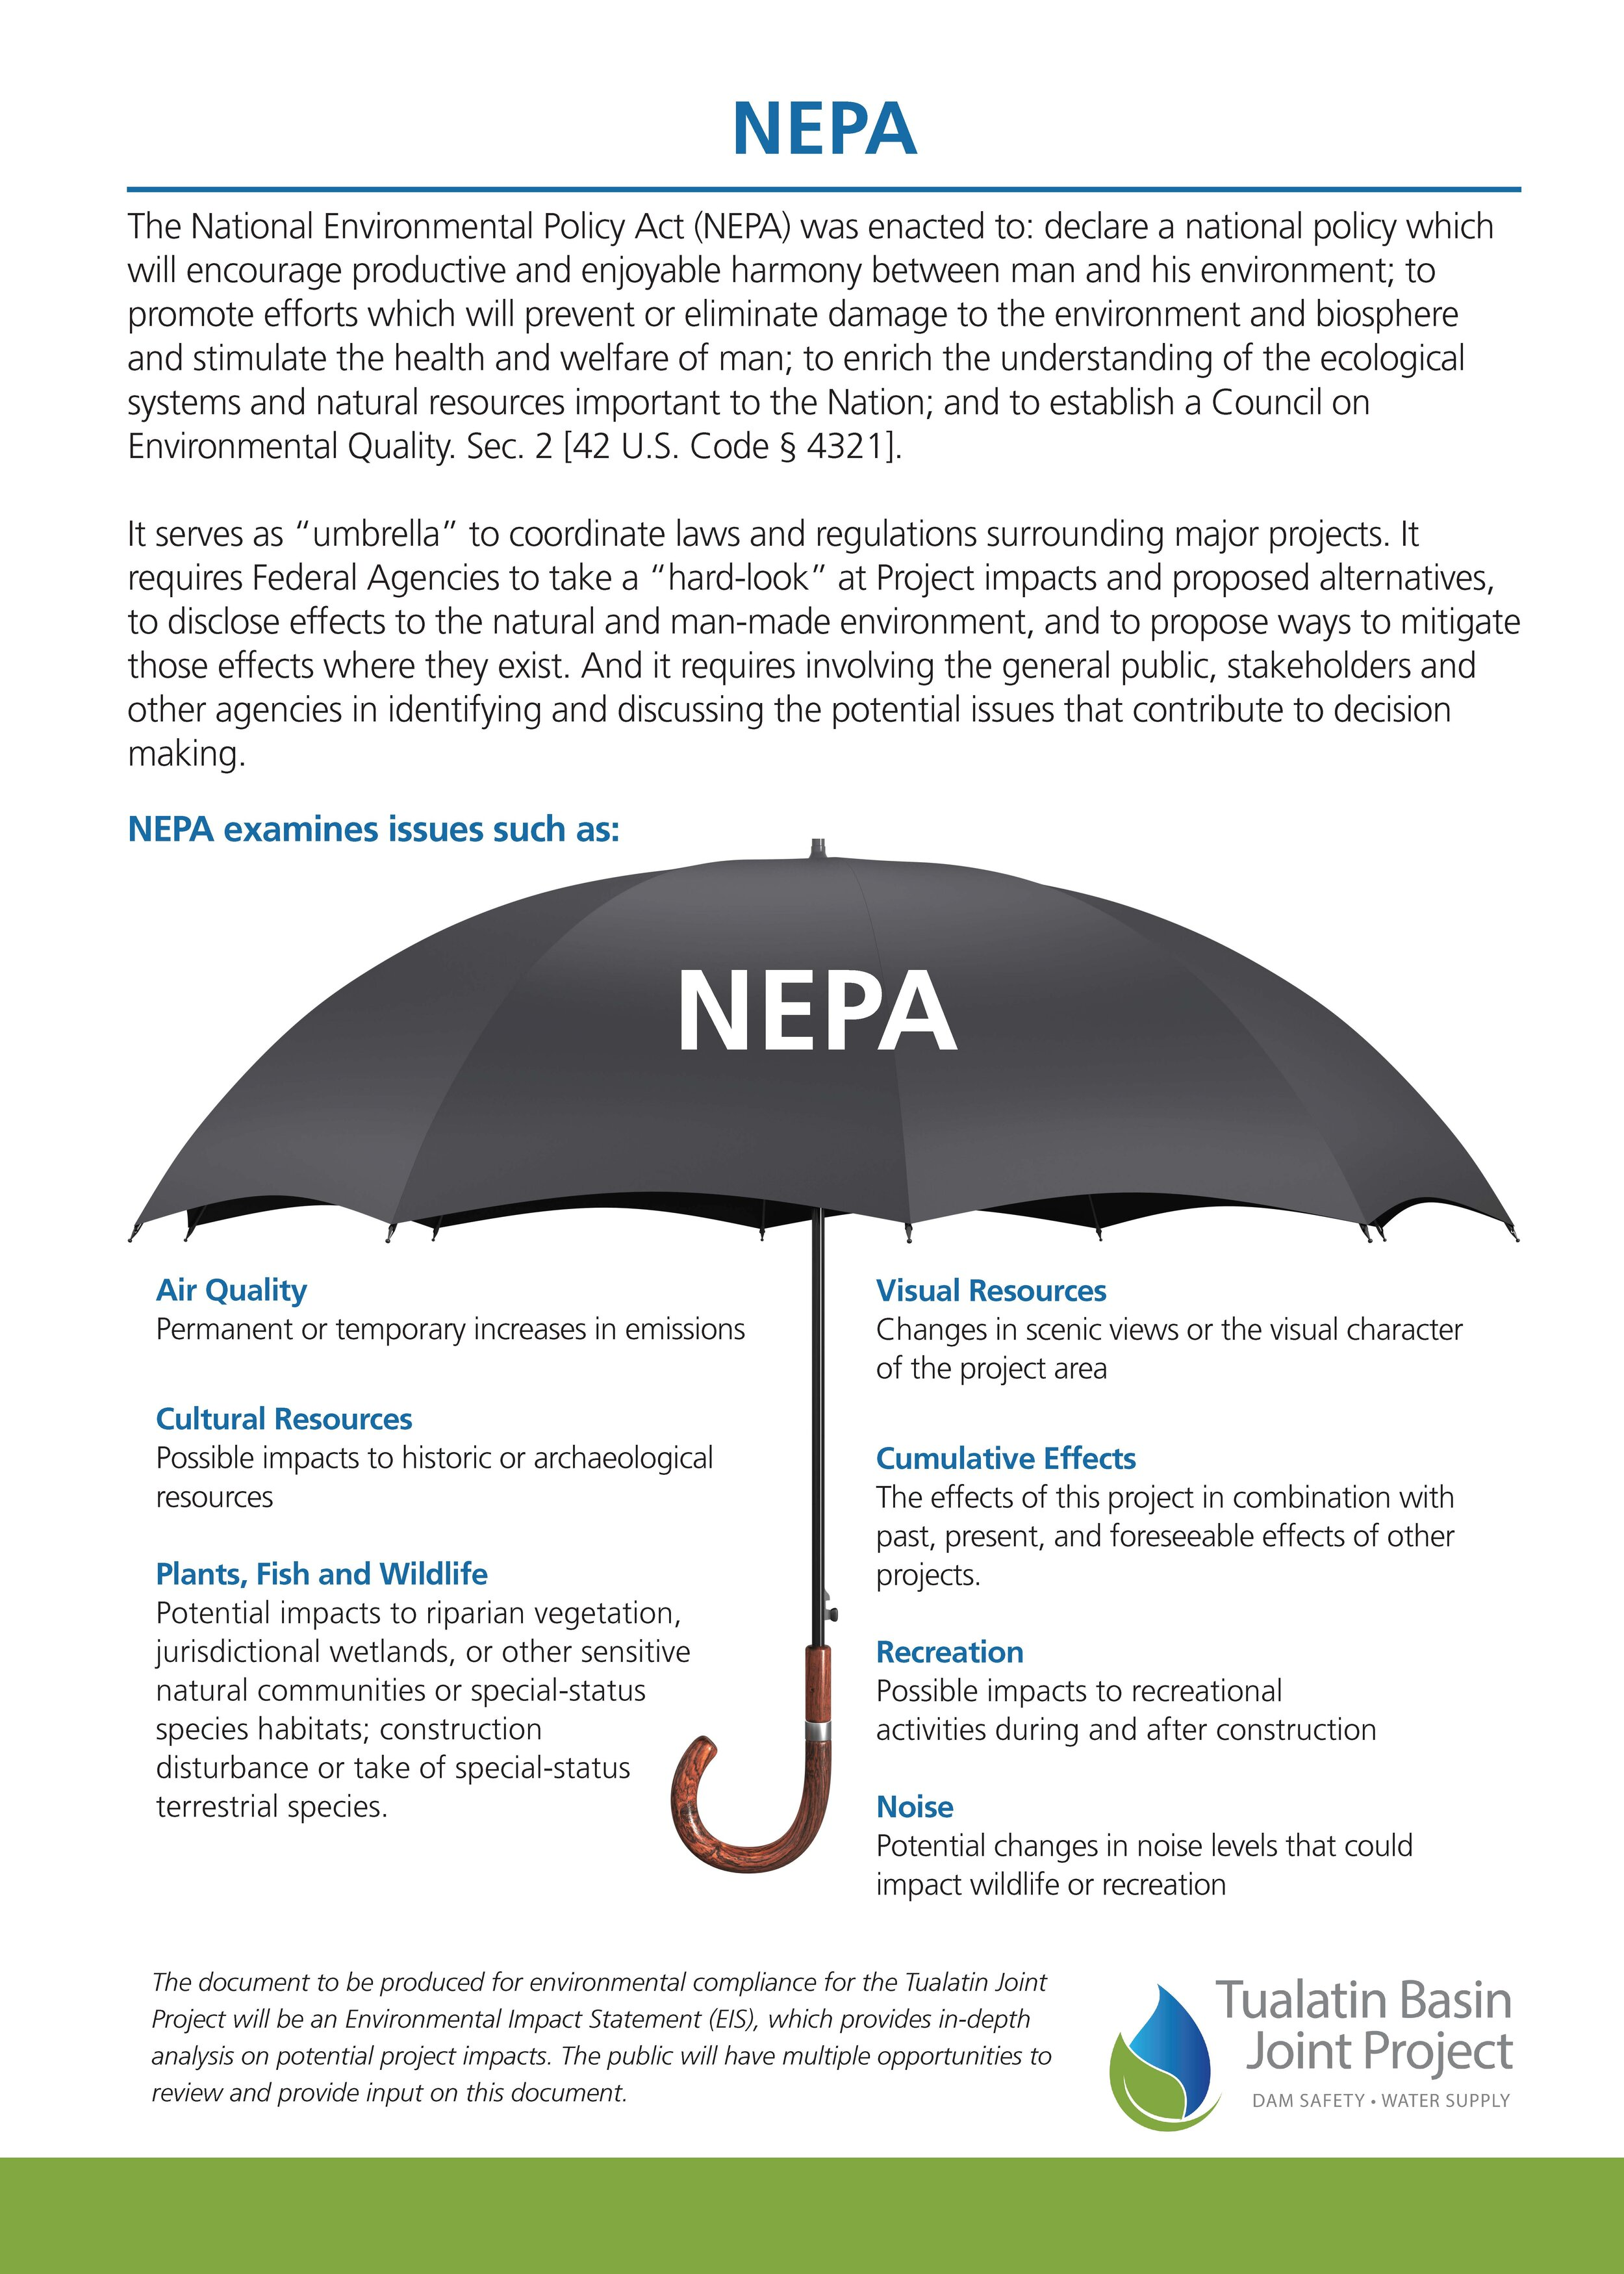 Copy of Information about the National Environmental Policy Act (NEPA)